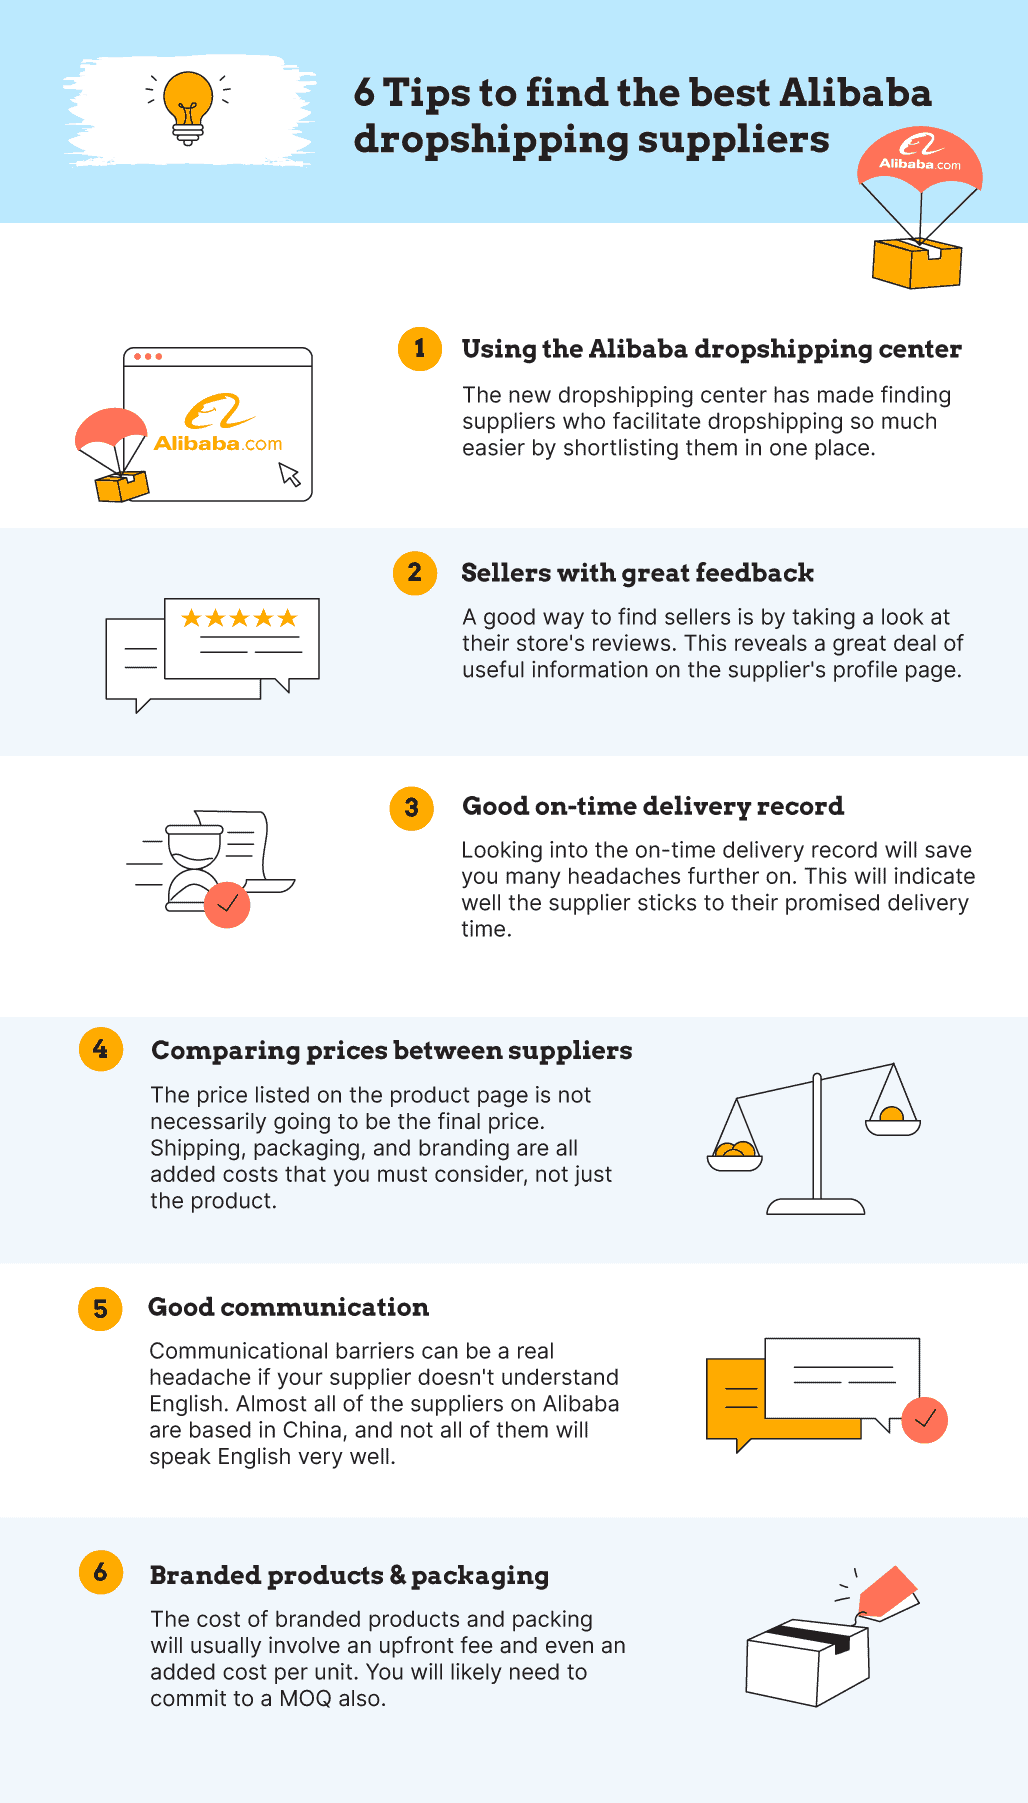 How to find great Alibaba dropshipping suppliers - Infographic